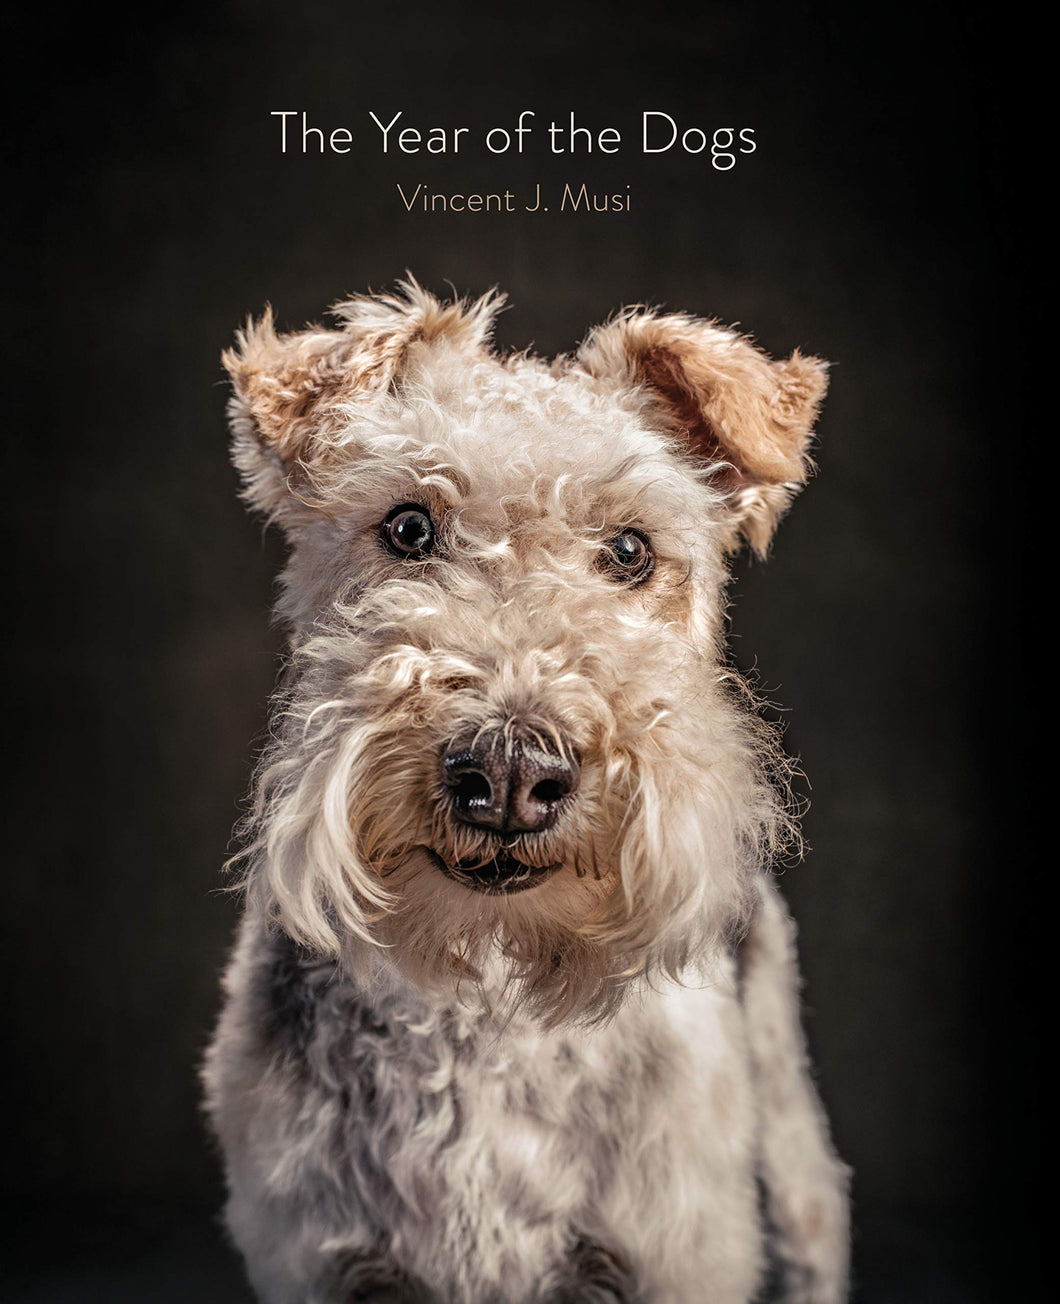 The Year of Dogs